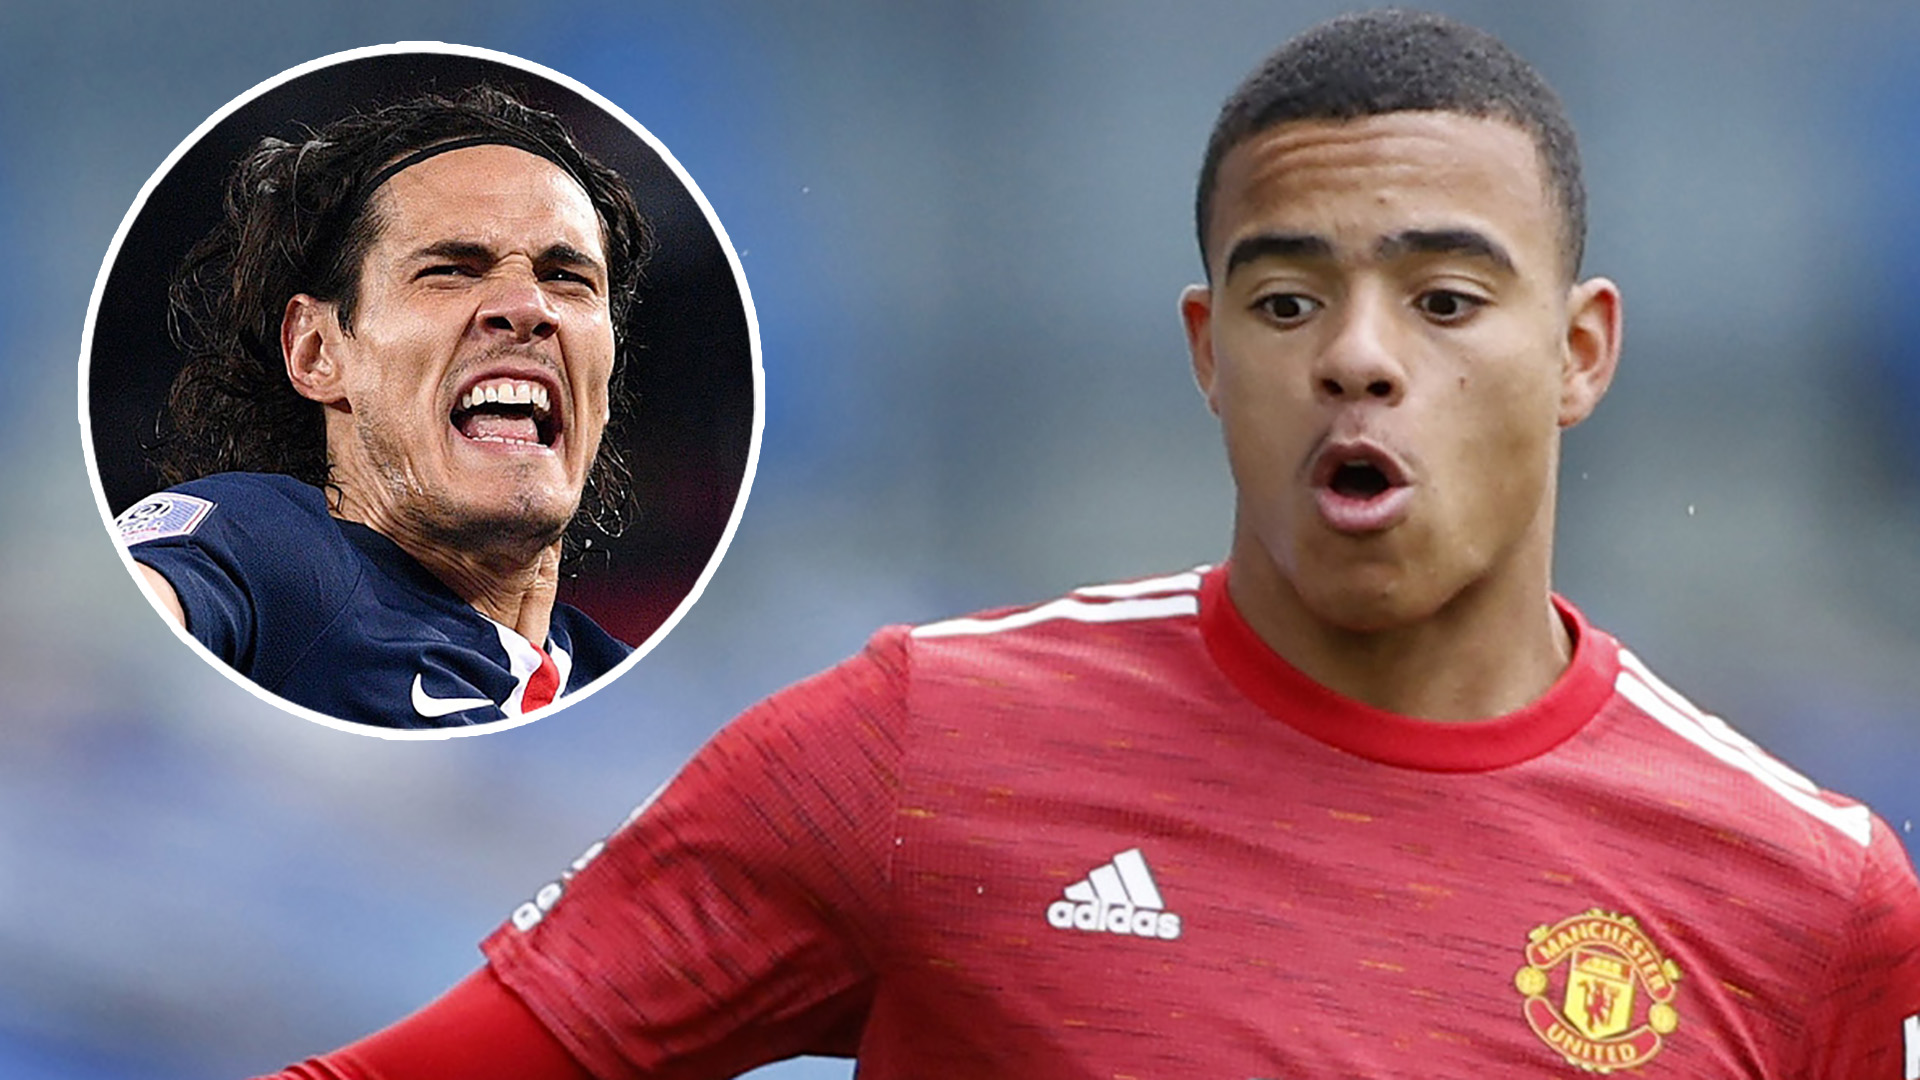 'Cavani can teach Greenwood' - Man Utd teenager will benefit most from ex-PSG star's arrival at Old Trafford, says Ferdinand